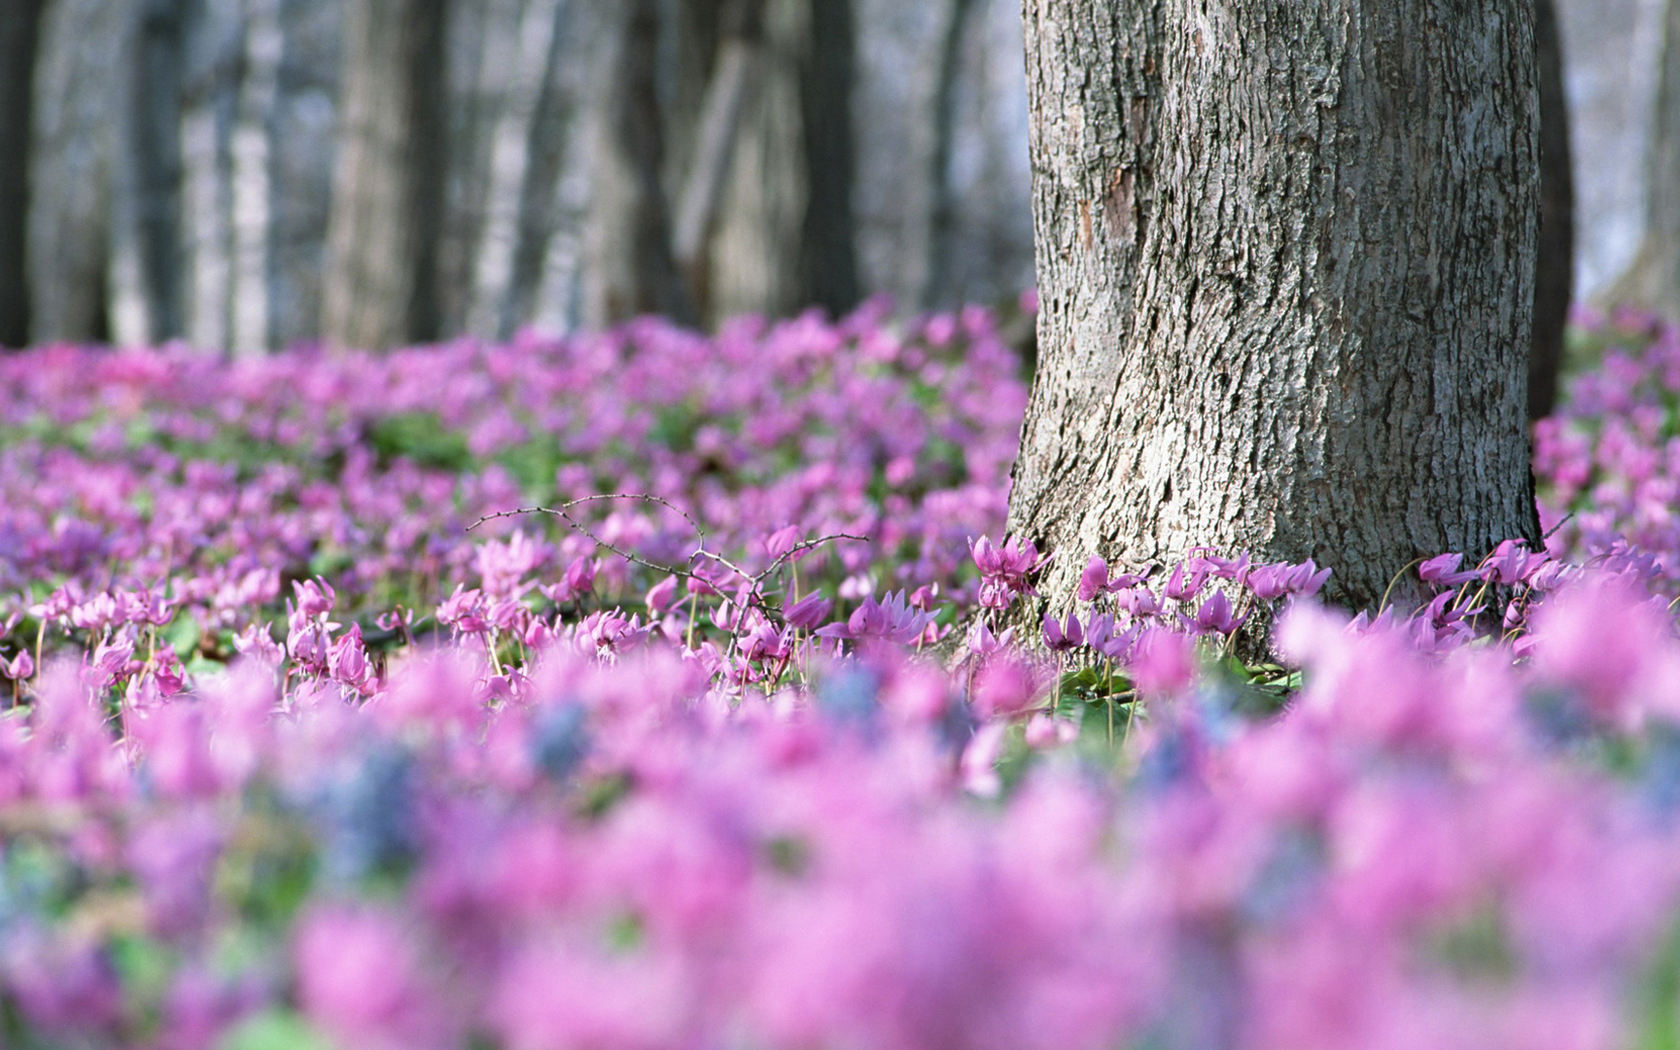 flowers in the forest